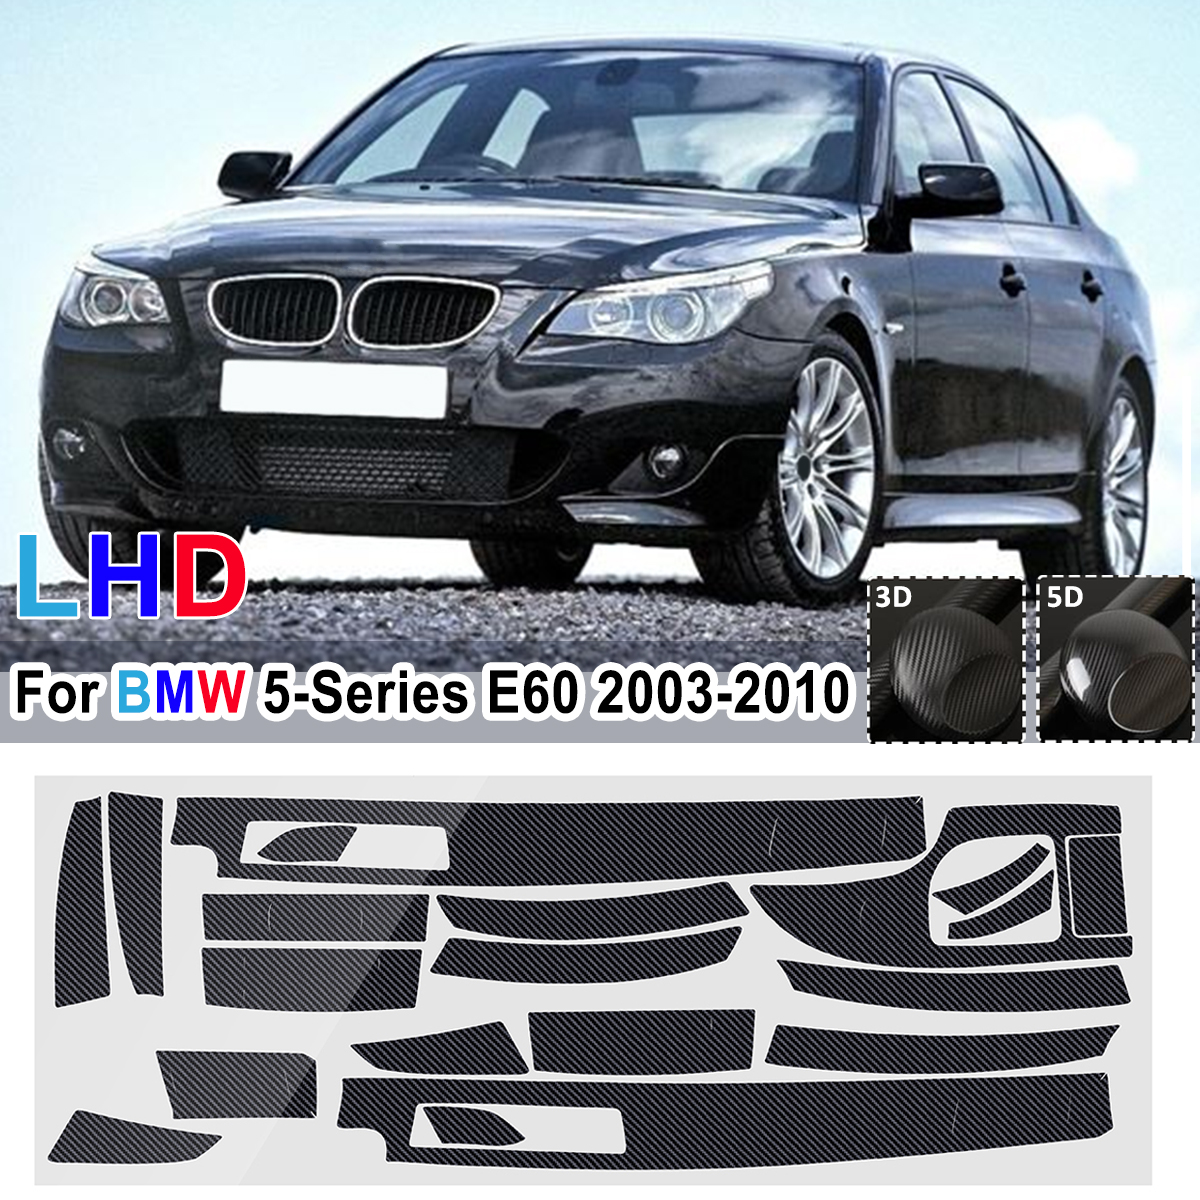 18Pcs LHD 5D Glossy/3D Matte <font><b>Carbon</b></font> Fiber Pattern Car <font><b>Interior</b></font> Dashboard Sticker For <font><b>BMW</b></font> 5-Series <font><b>E60</b></font> 2003-2010 image